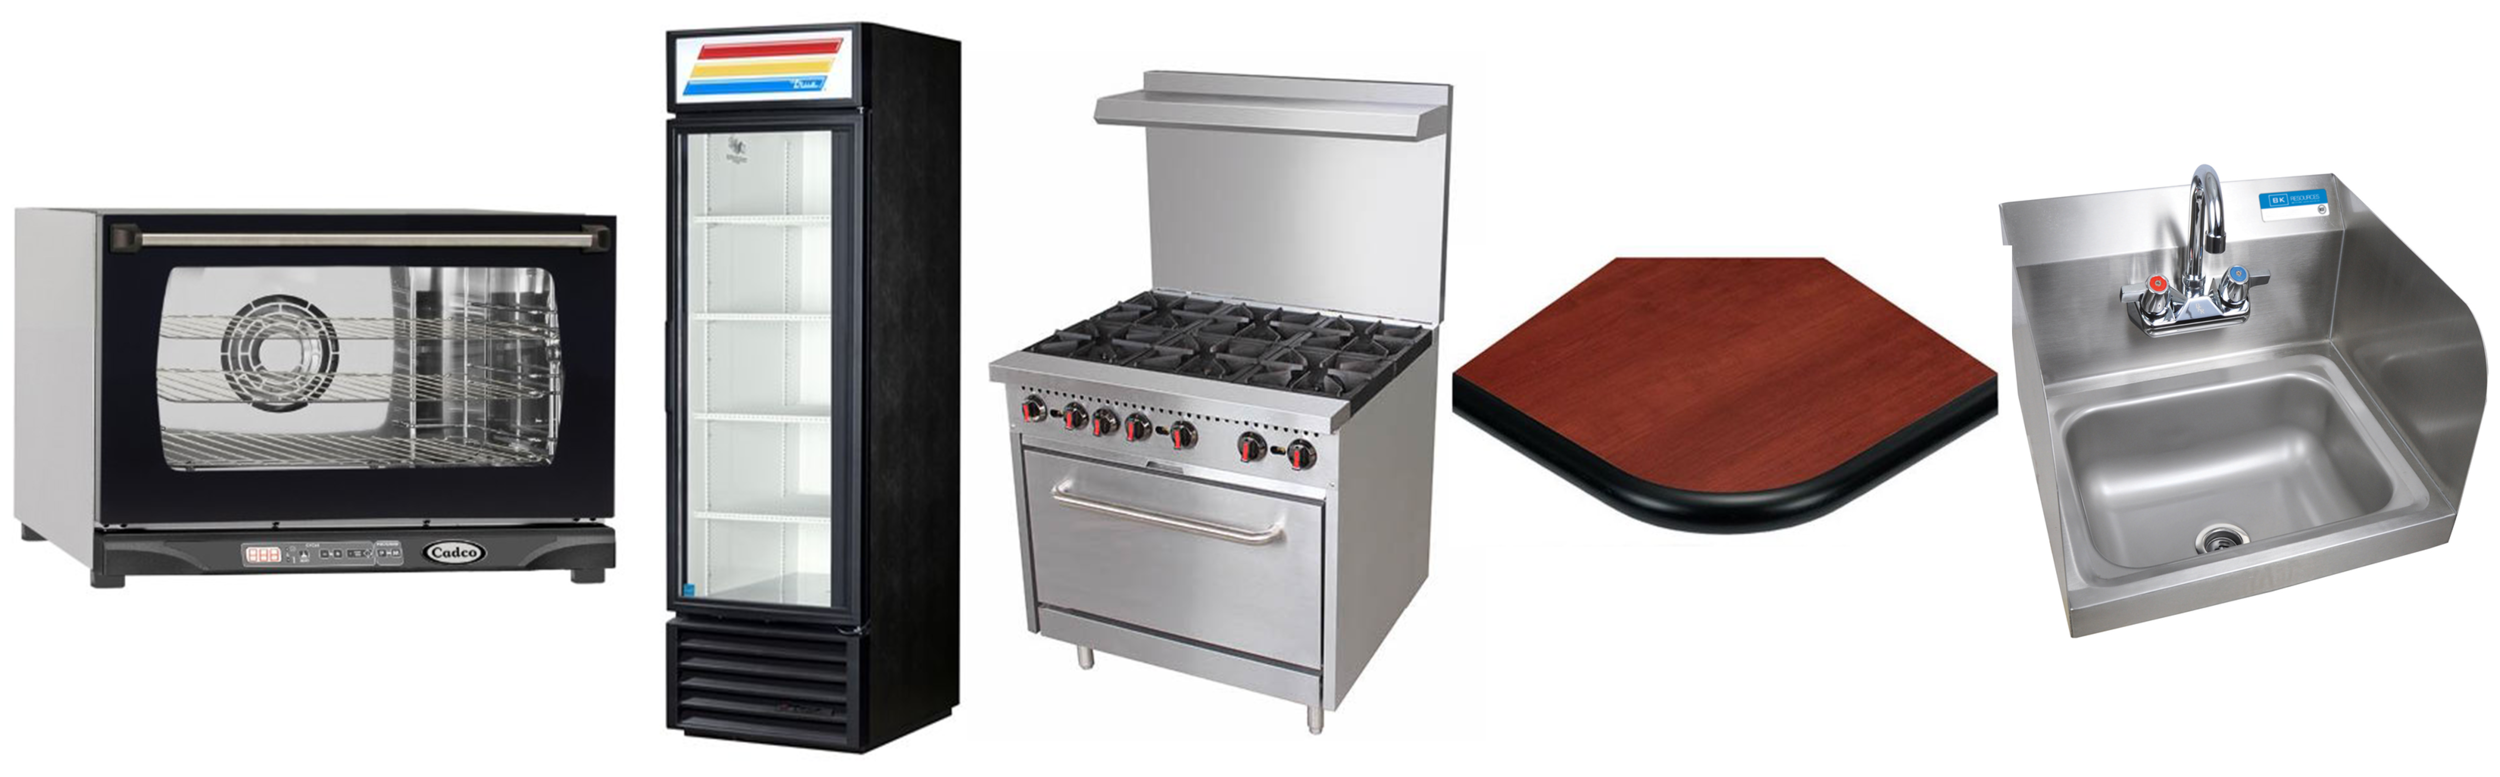 Get anything you need from countertop cooking equipment, to heavy duty equipment! Don't forget about our hand sinks and furniture!